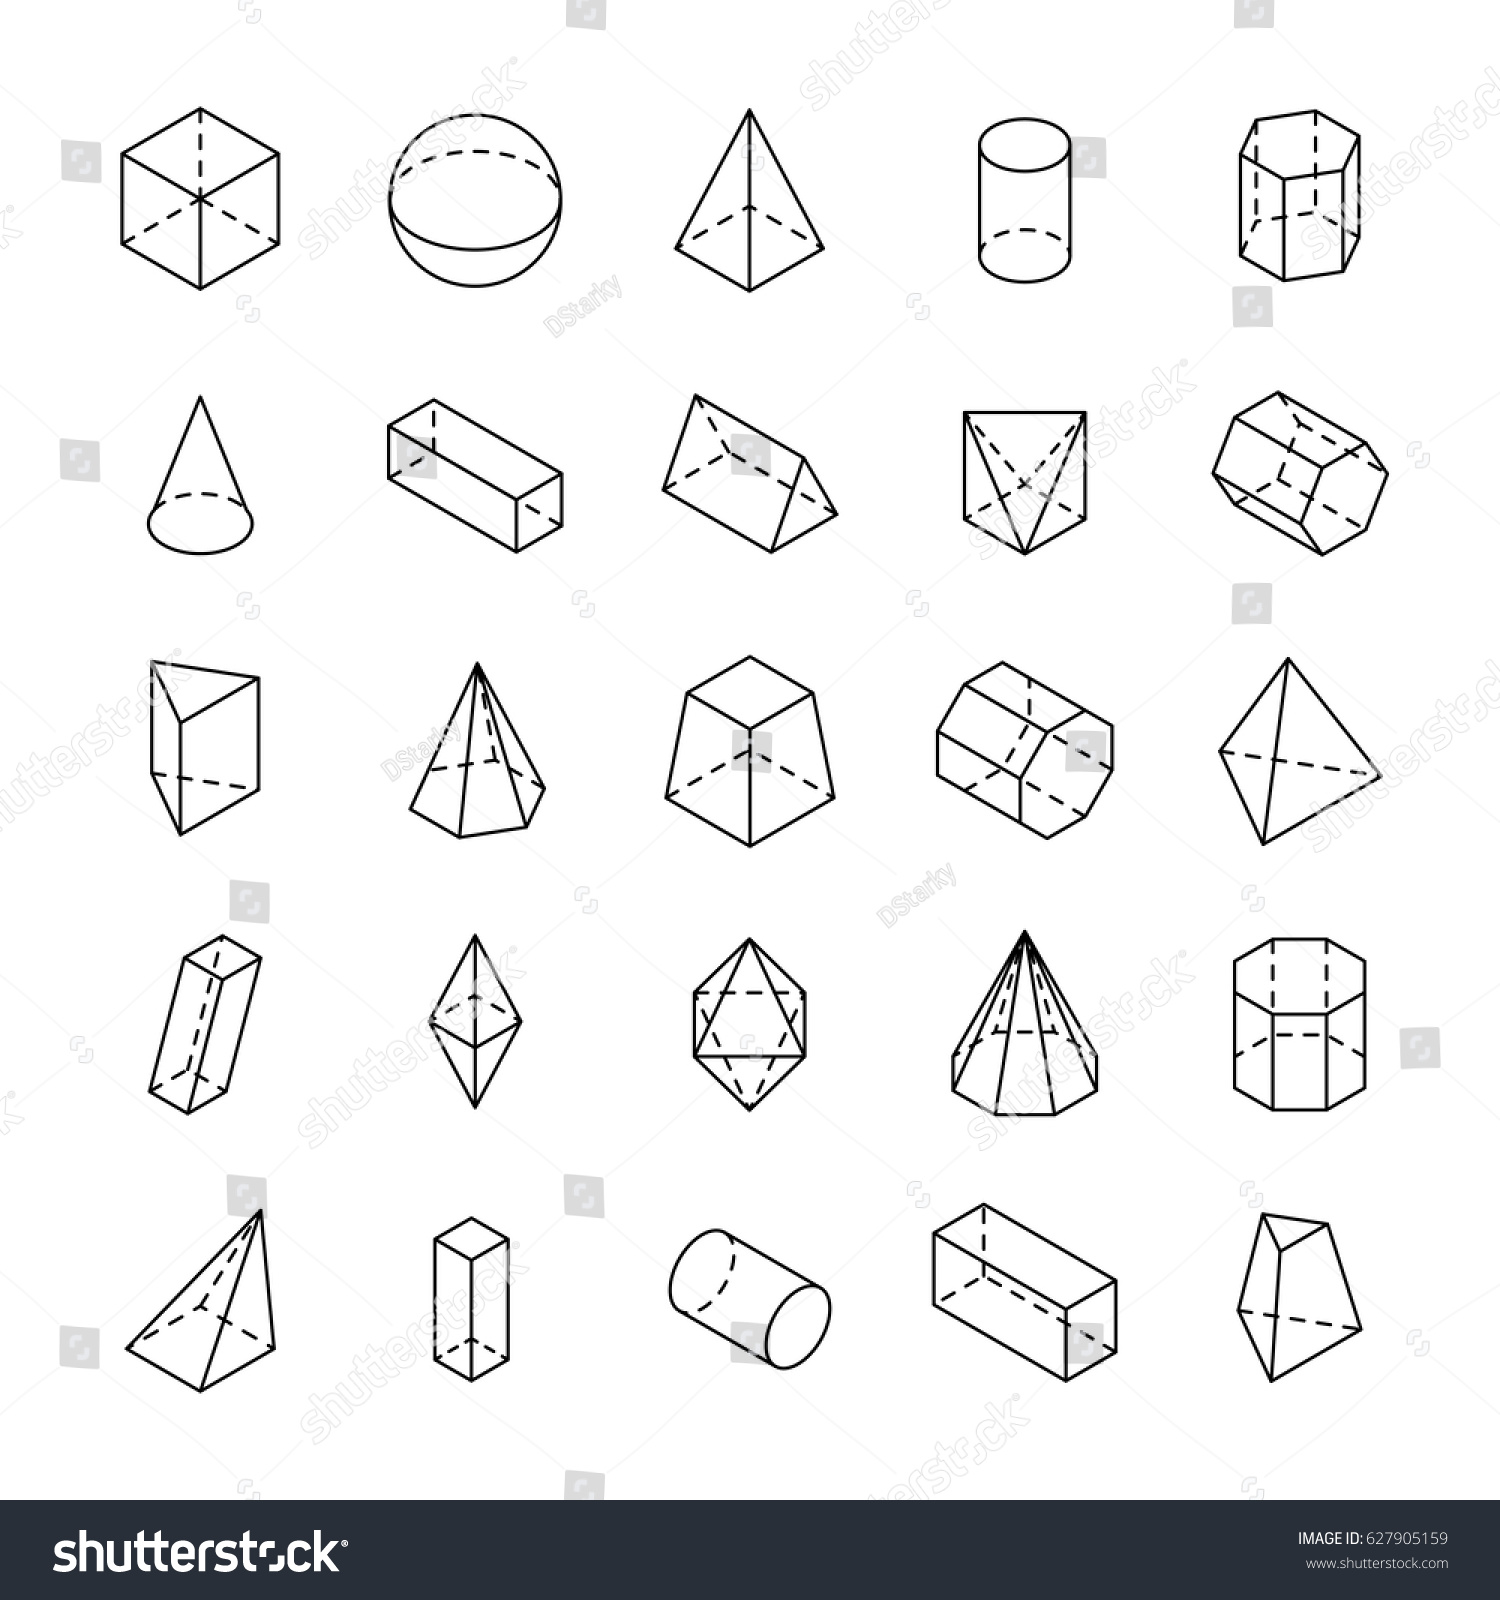 how to draw isometric shapes